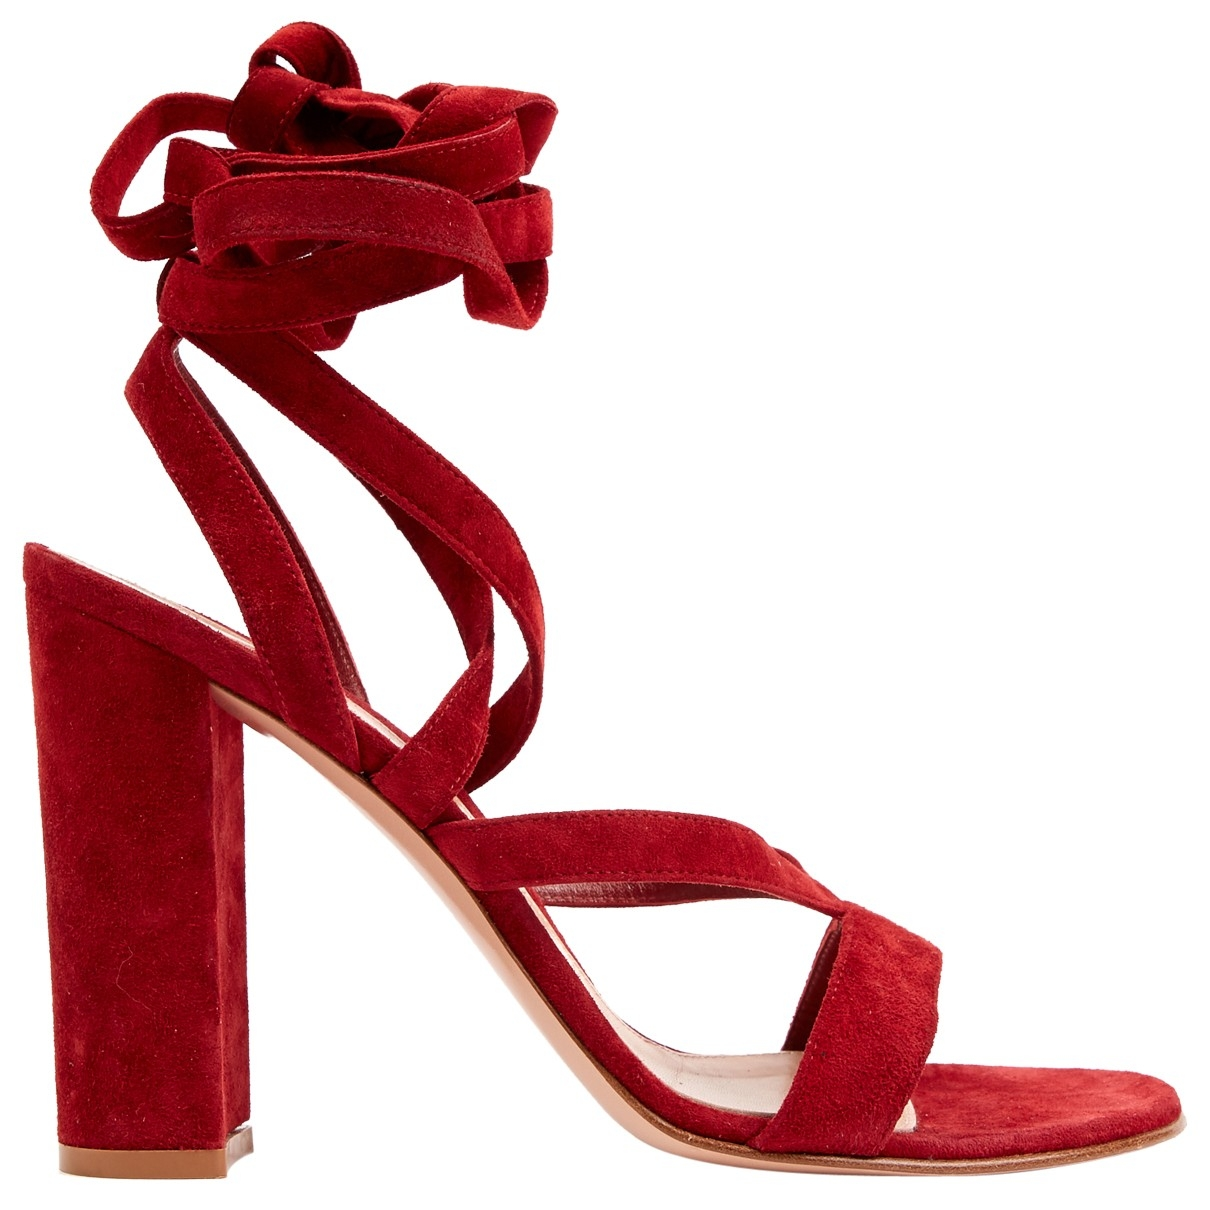 Gianvito Rossi \N Burgundy Suede Heels for Women 40 EU